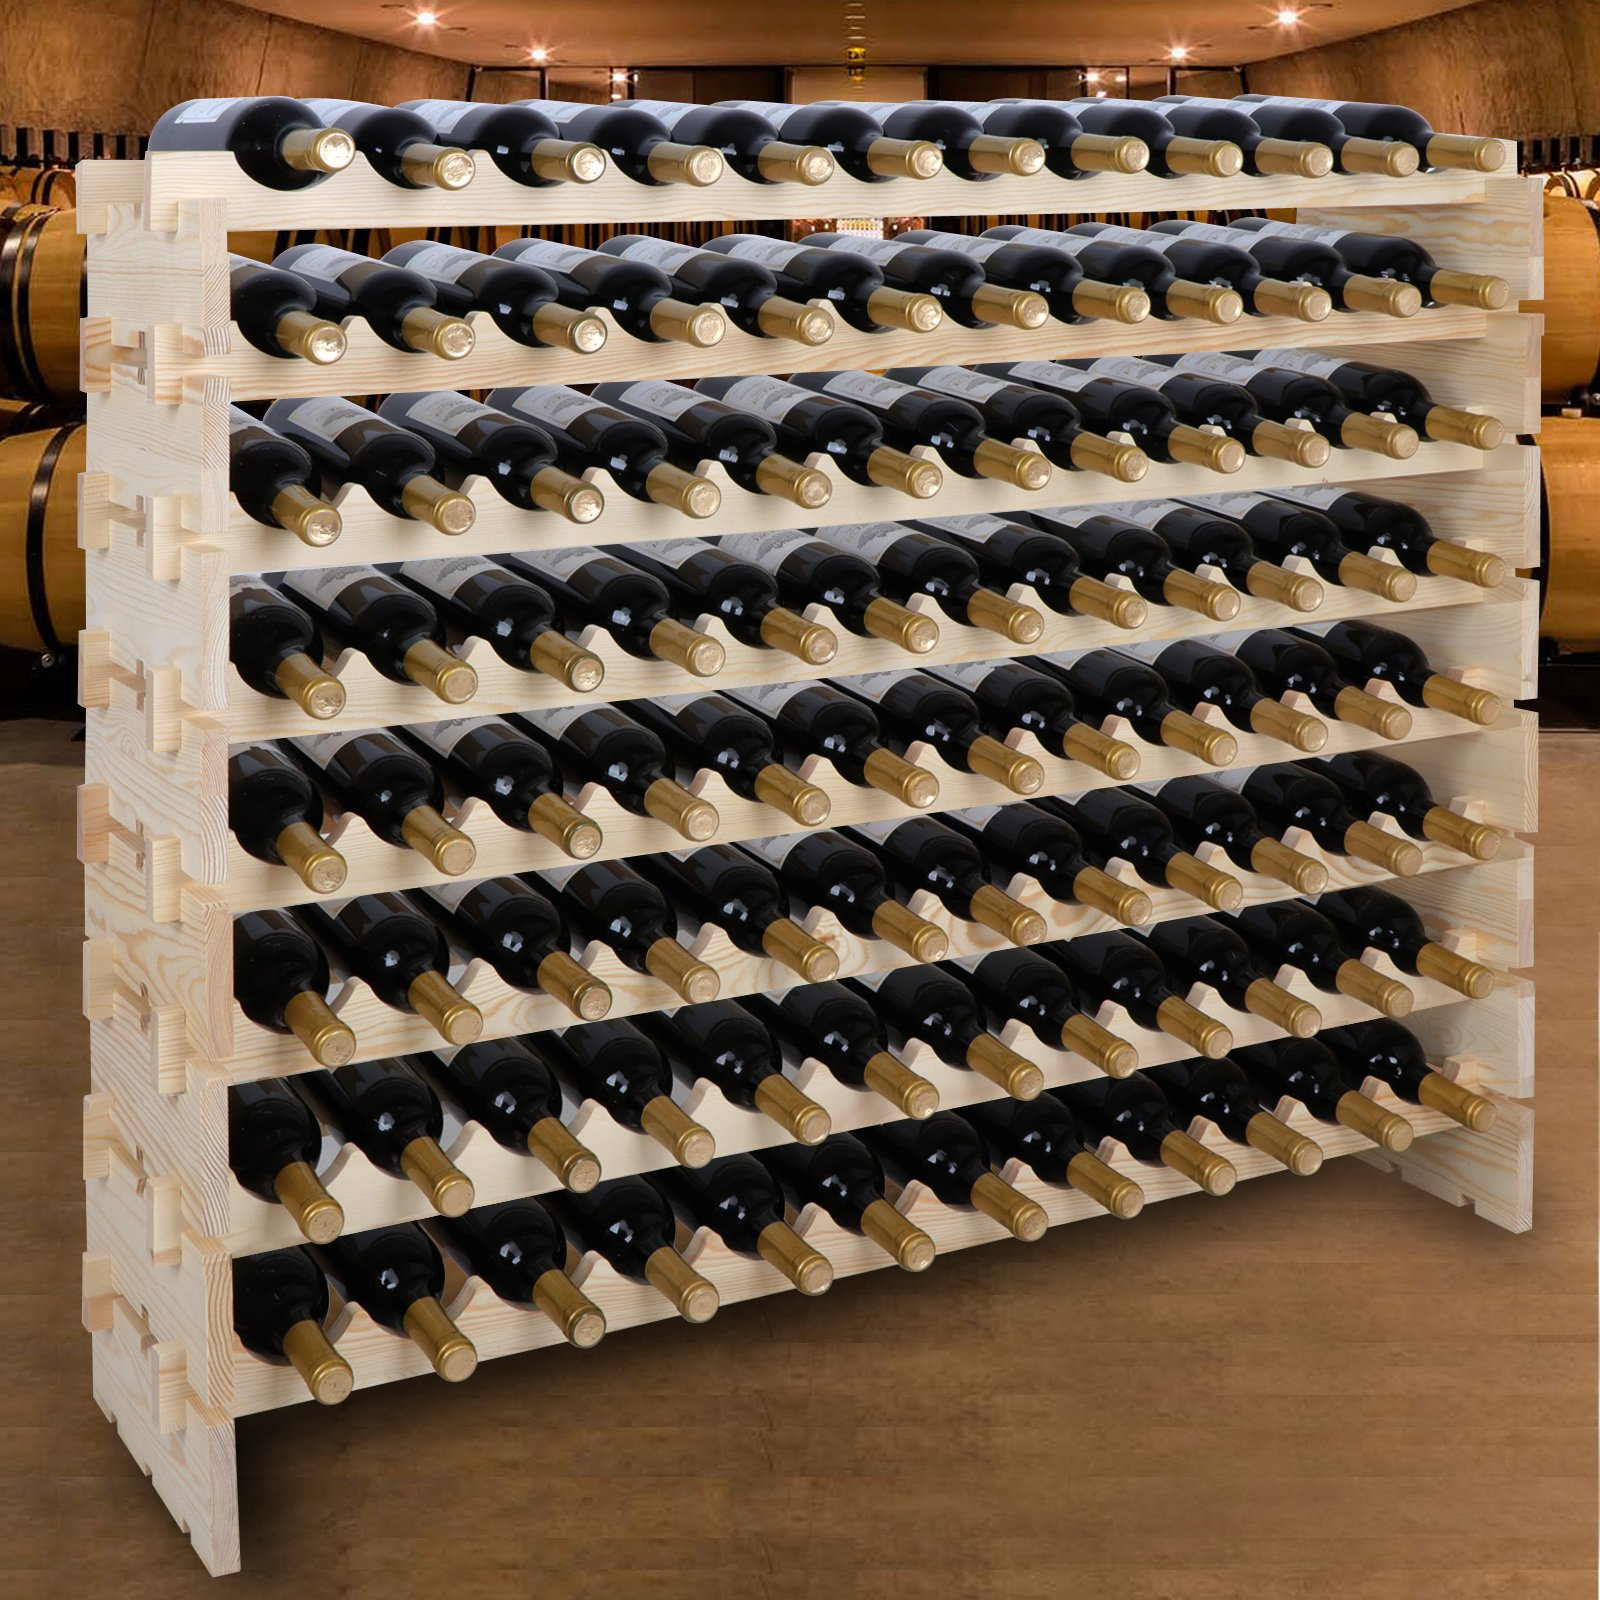 A Stackable Wine Rack Is One Of The Most Practical Options For Home Wine  Storage. Although Some Can Still Be Appealing To Look At, Many Of These  Options ...